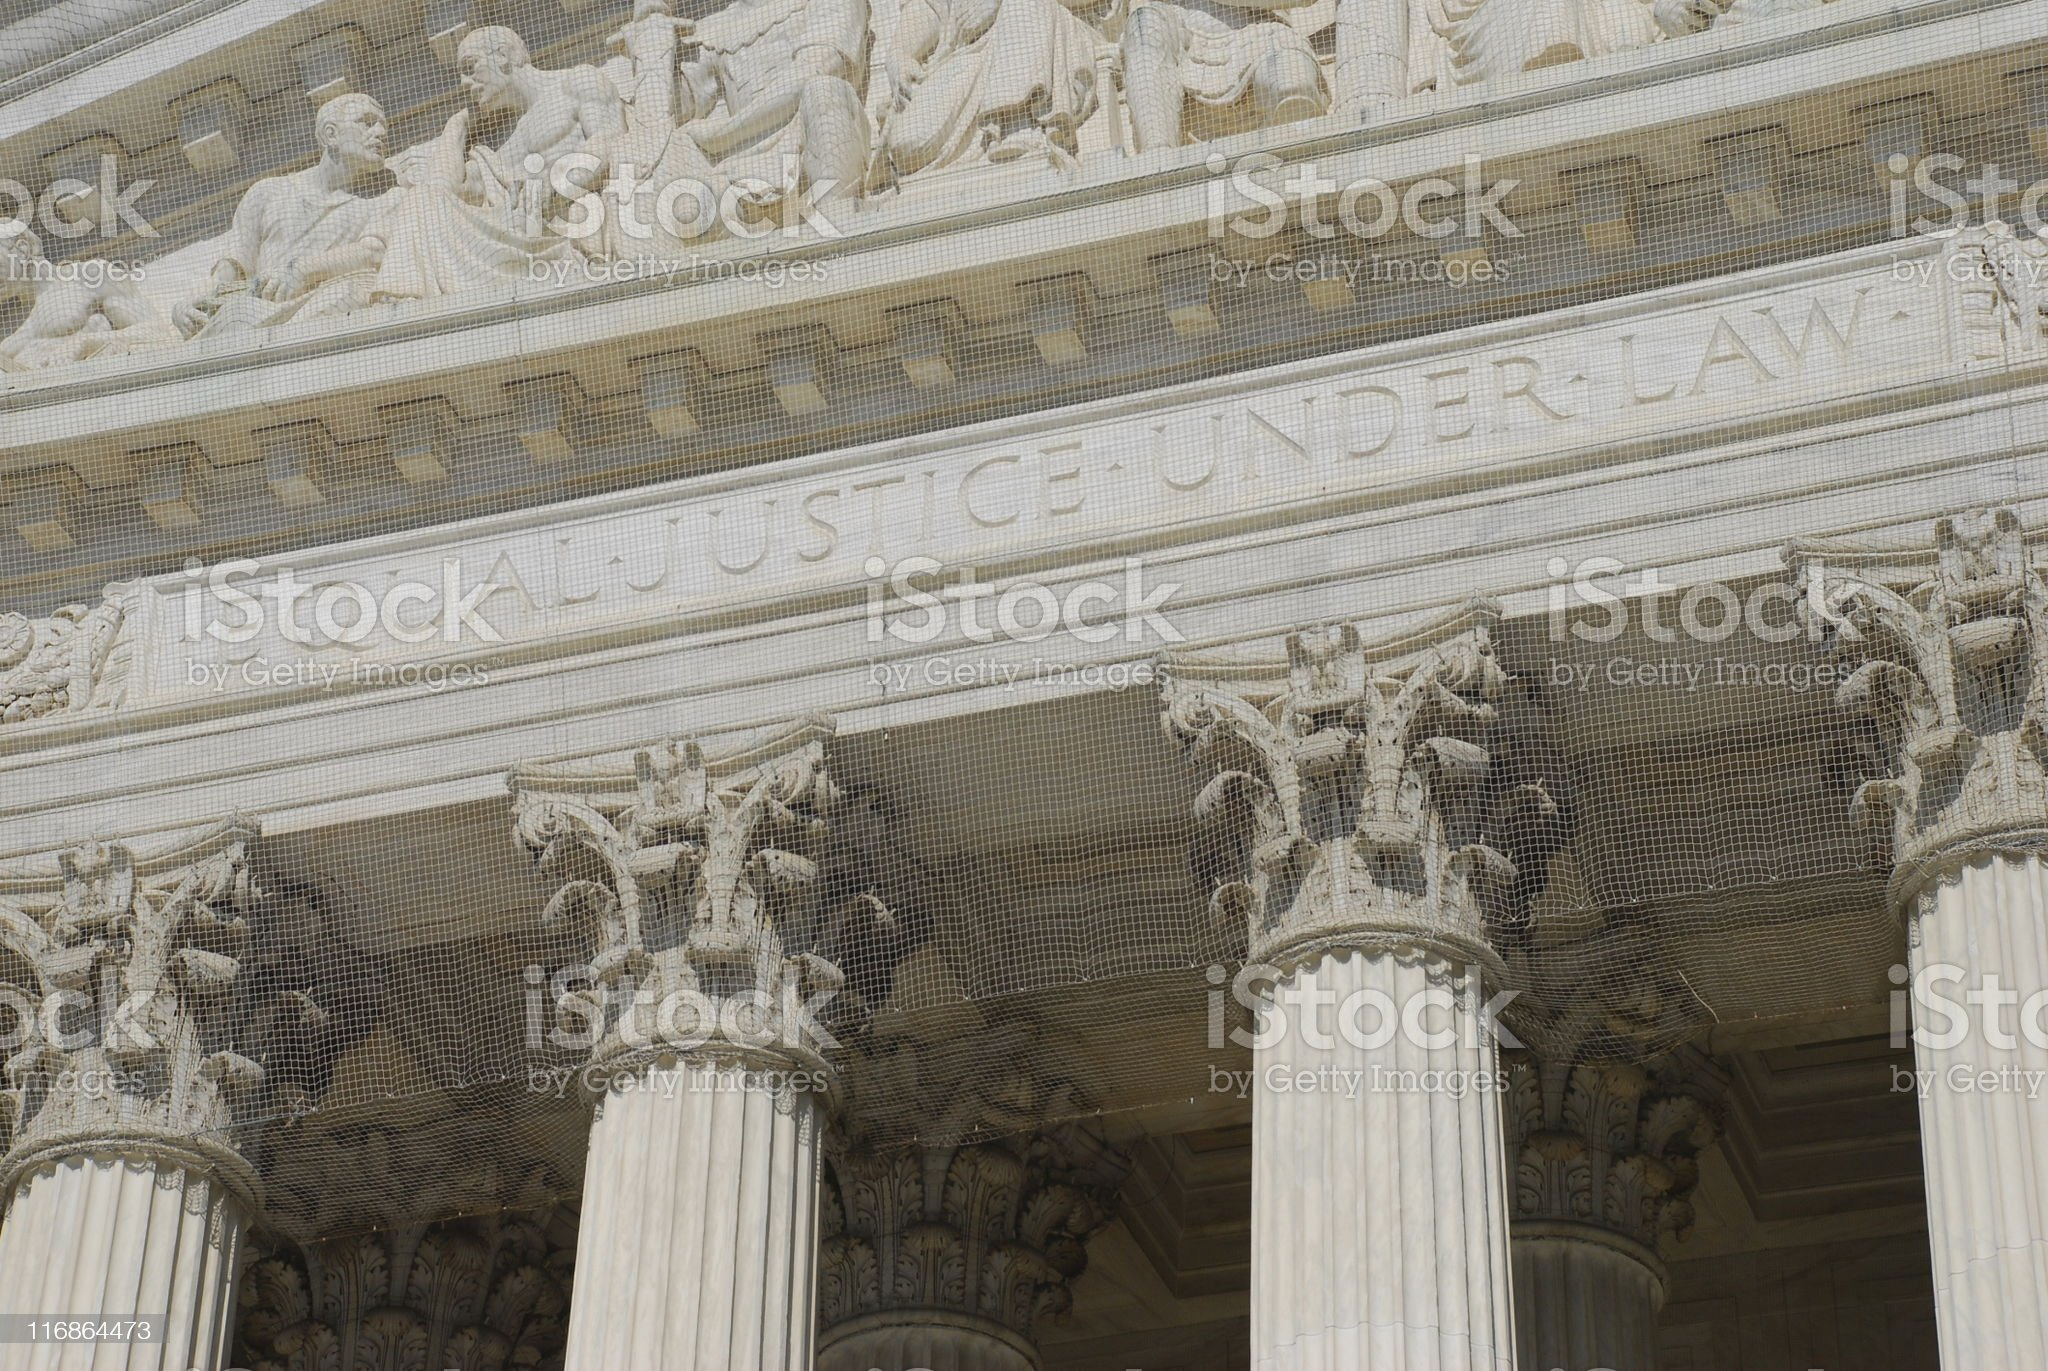 EQUAL JUSTICE UNDER LAW royalty-free stock photo